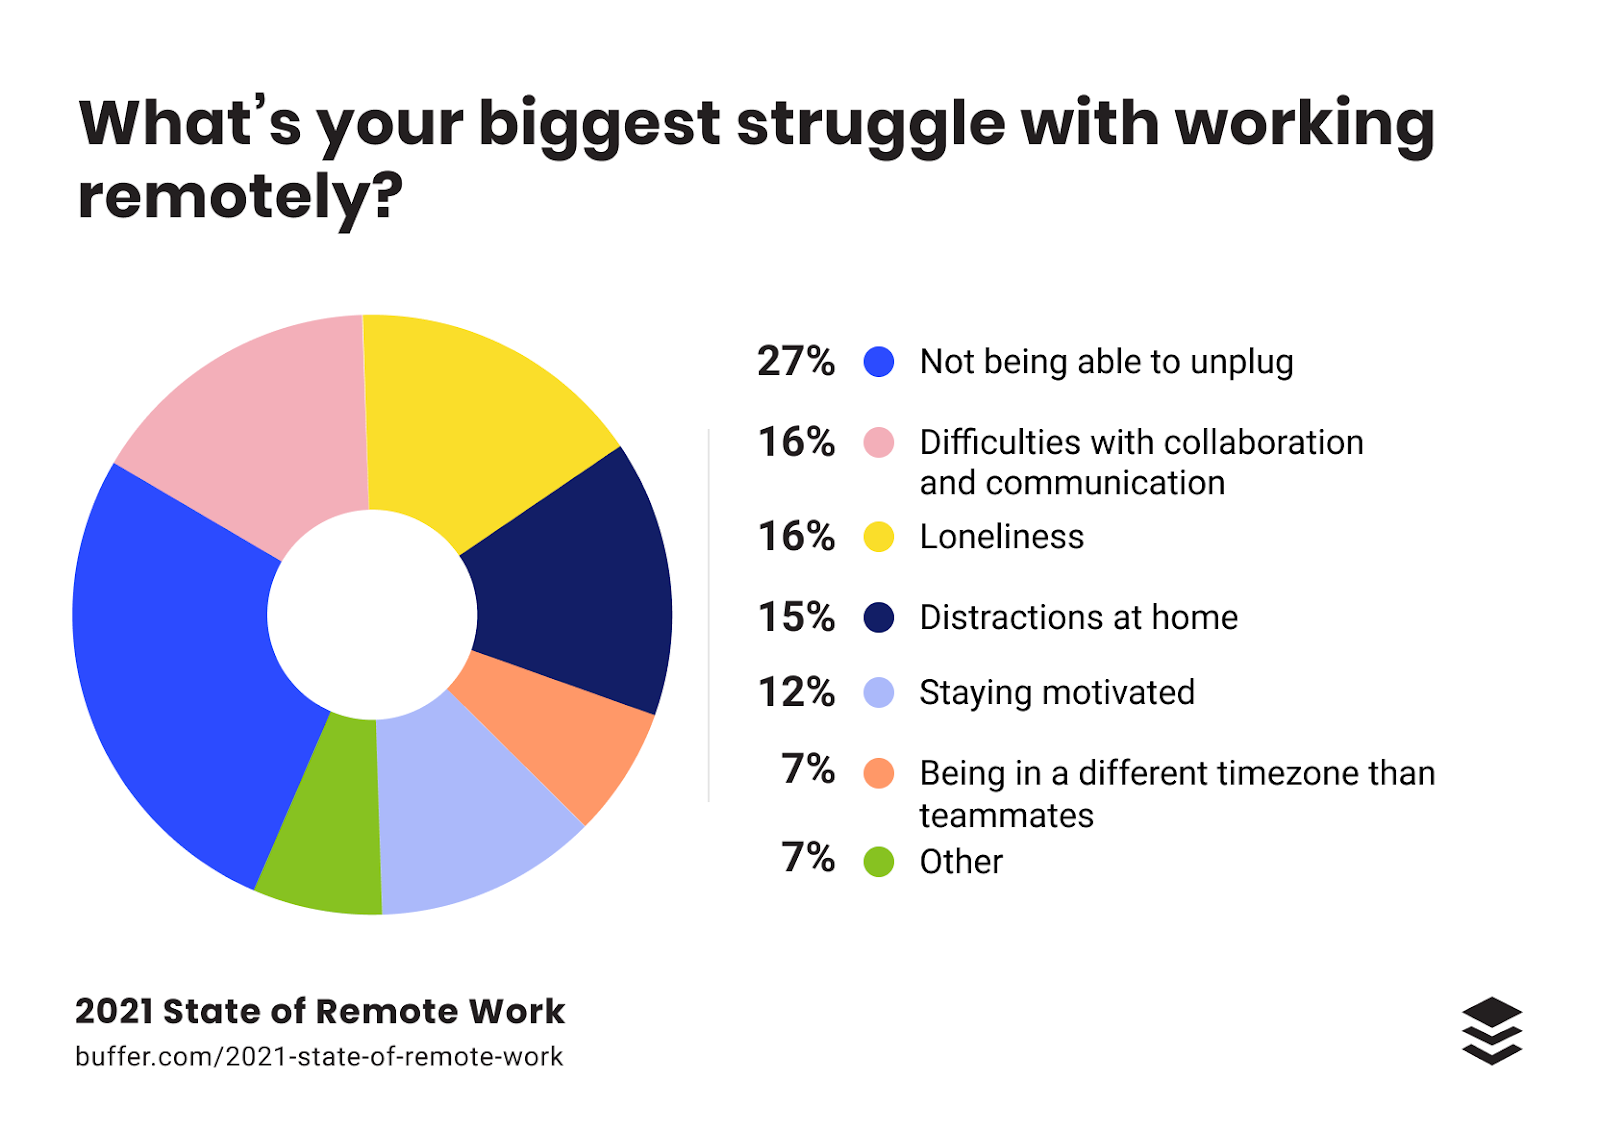 the 4 day work week is an attempt to deal with burnout